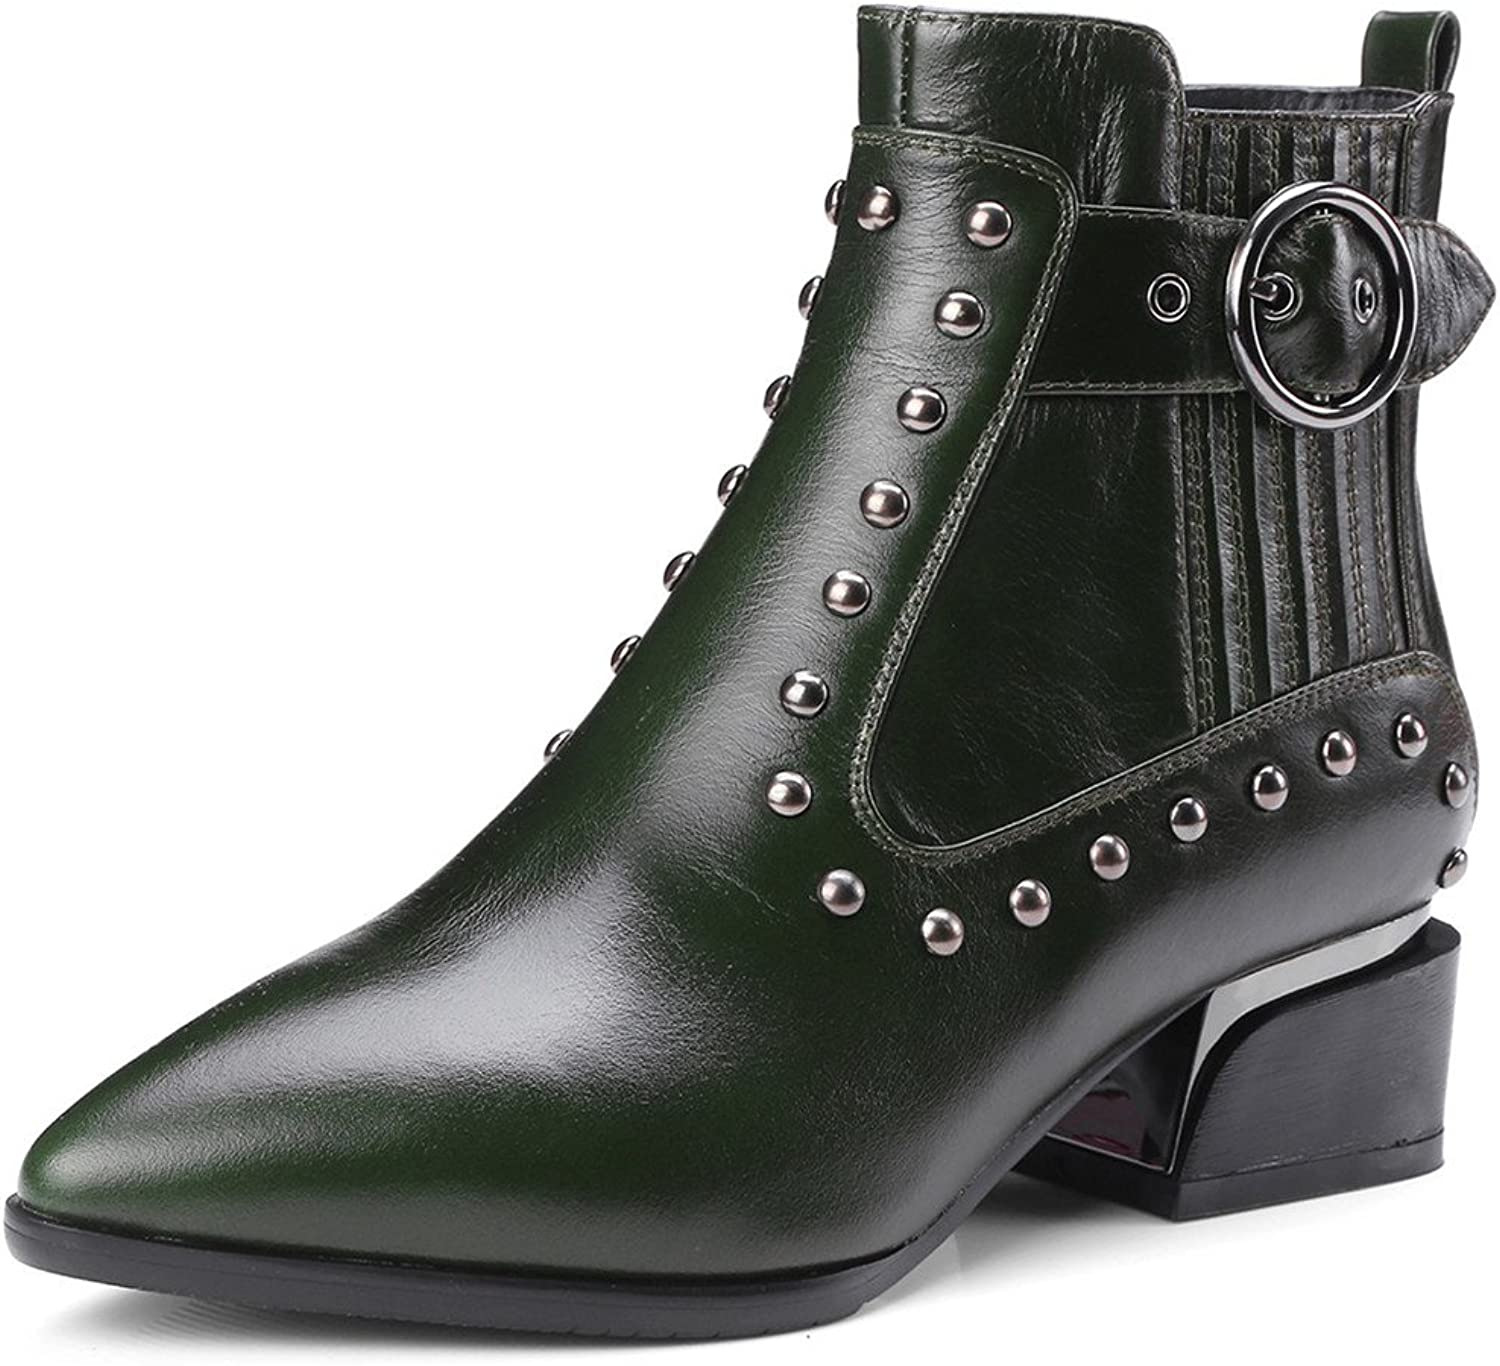 Nine Seven Genuine Leather Women's Pointed Toe Chunky Heel Side Zip Handmade Buckle Studded Ankle Boots